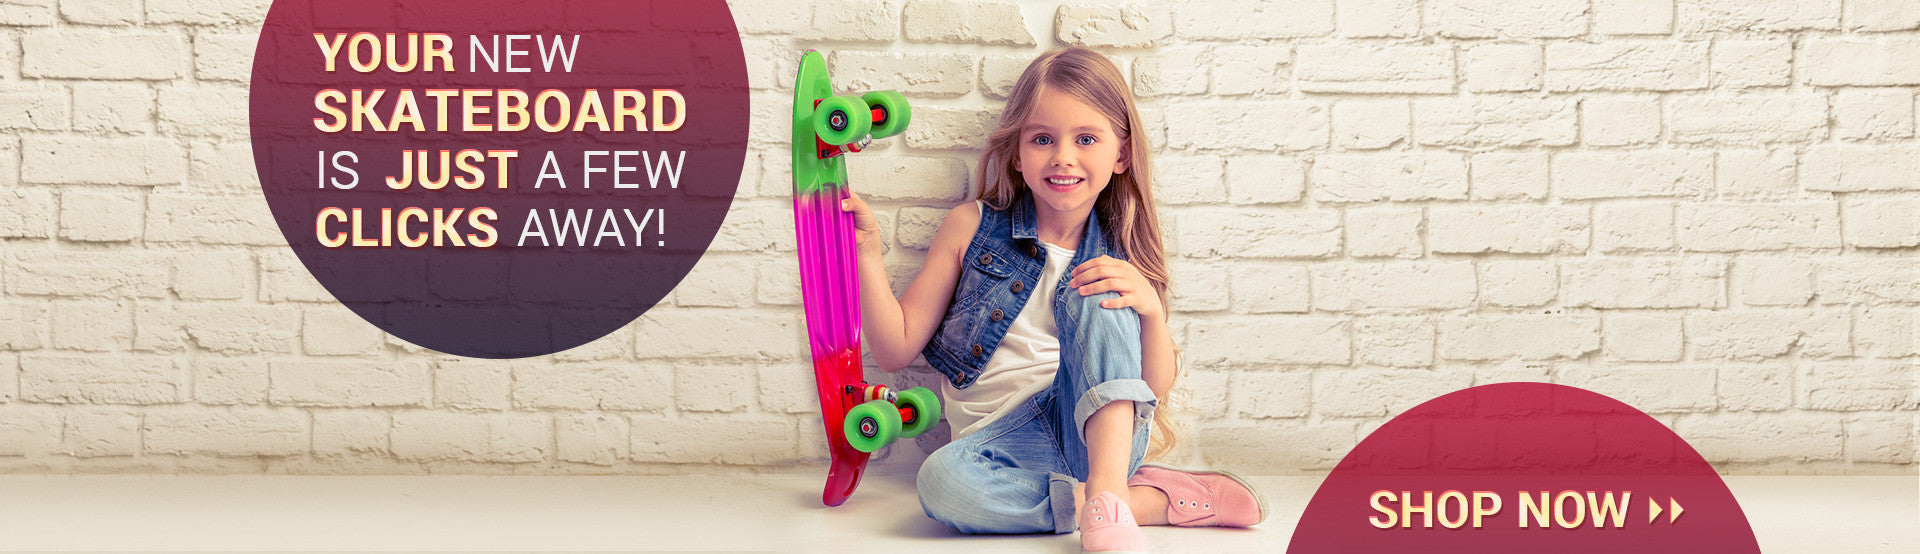 Penny Style Cruiser Boards 22 inch Retro Plastic LED Skateboards Complete - Oxemize.com